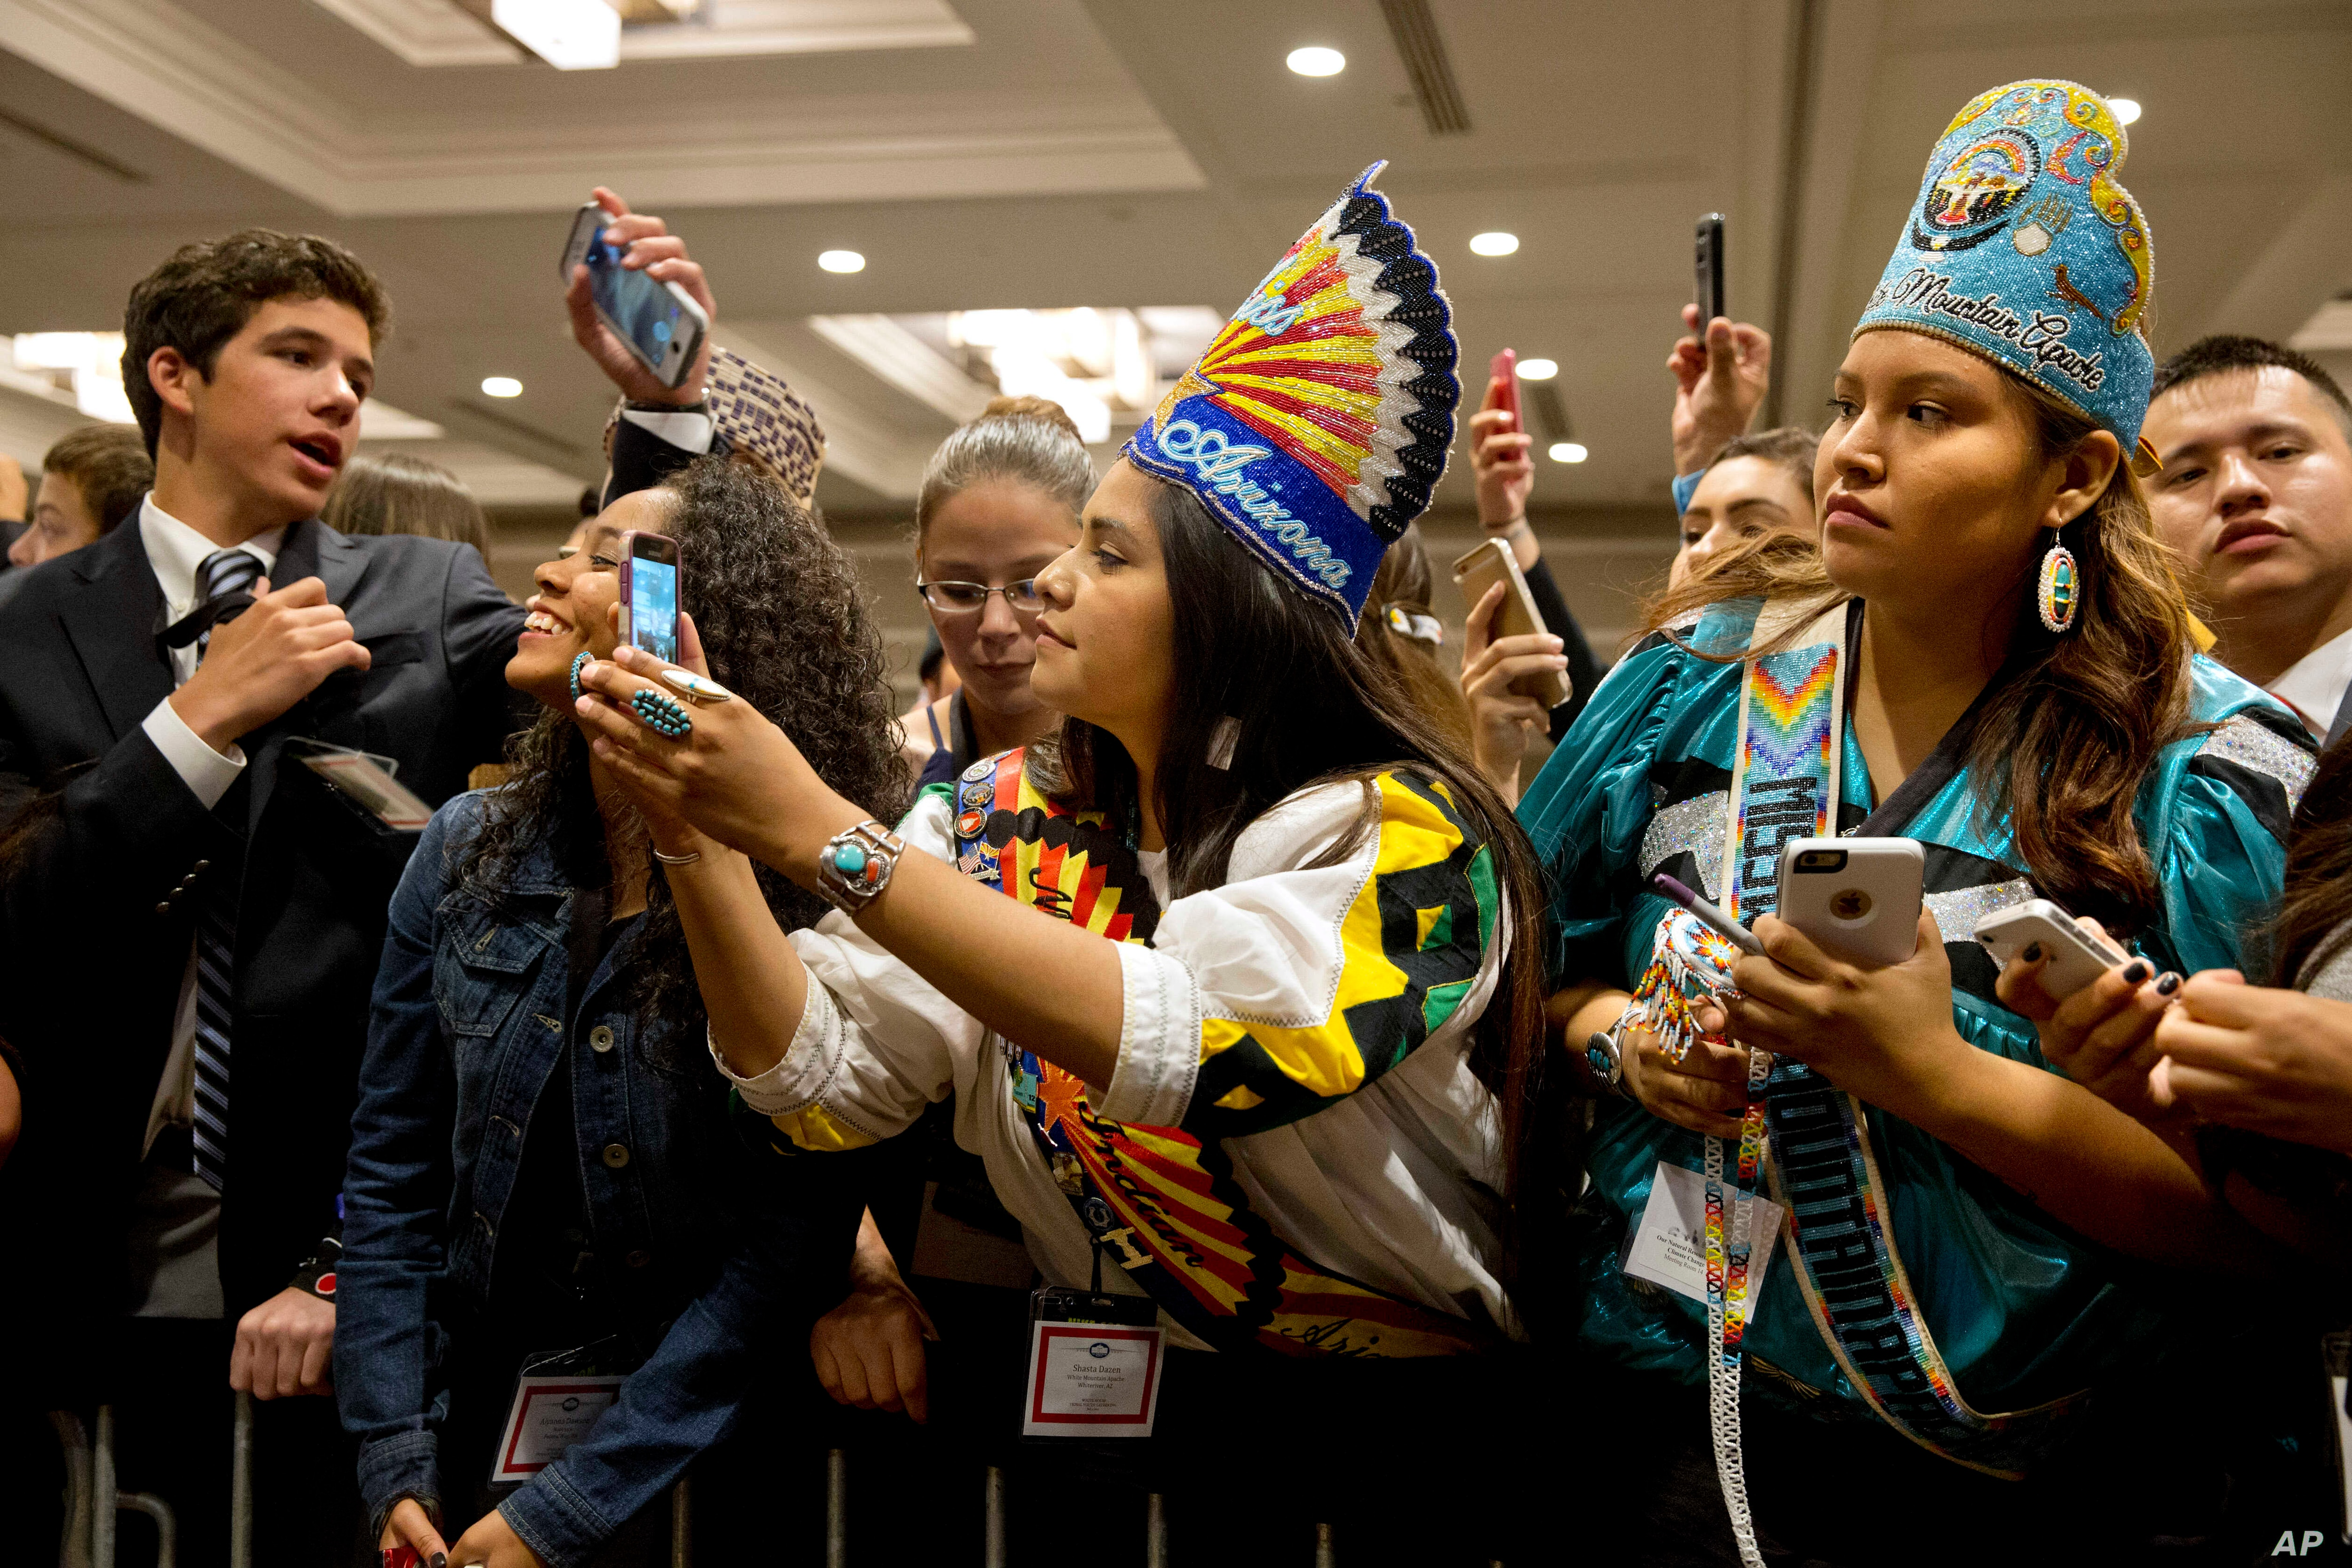 Young native Americans vie for a glimpse of first lady Michelle Obama, after she spoke at the first White House Tribal Youth Gathering, July 9, 2015 in Washington.